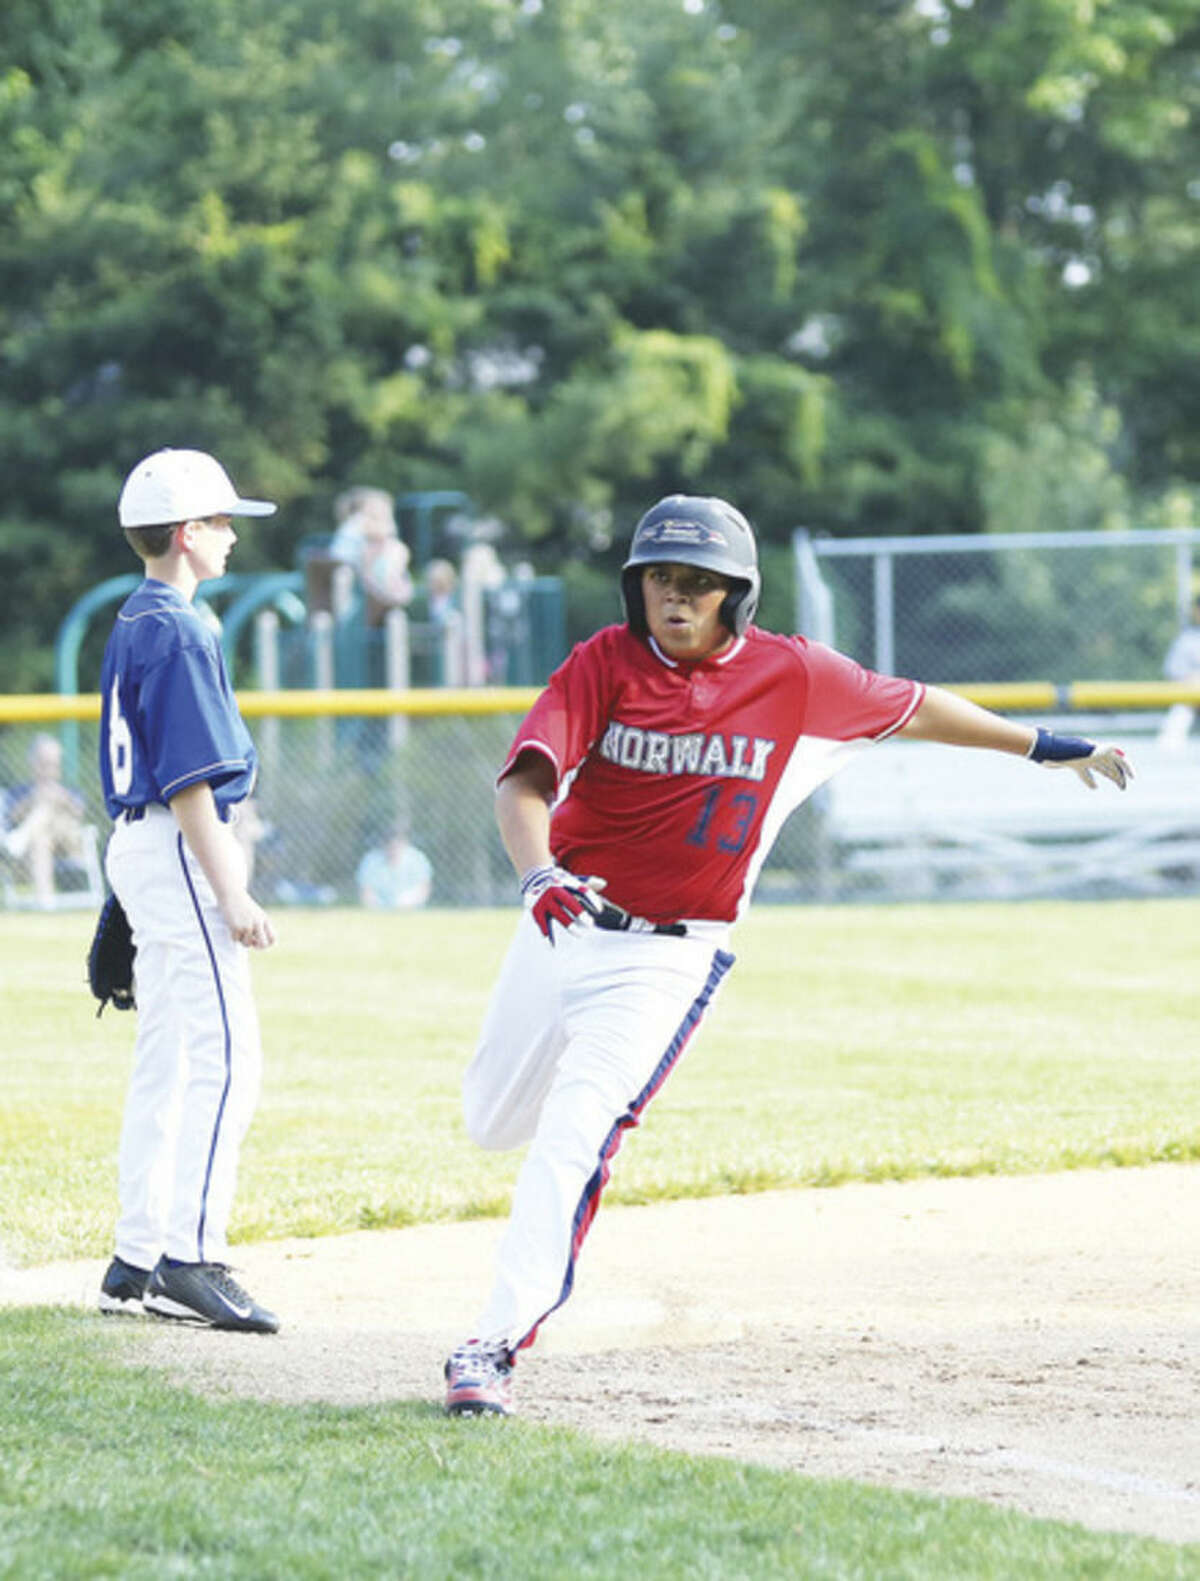 Hour photo/Danielle Calloway Norwalk's Trevor McGee, rounds third base and heads for home in Norwalk's 13-3 win over Darien American on Wednesday.